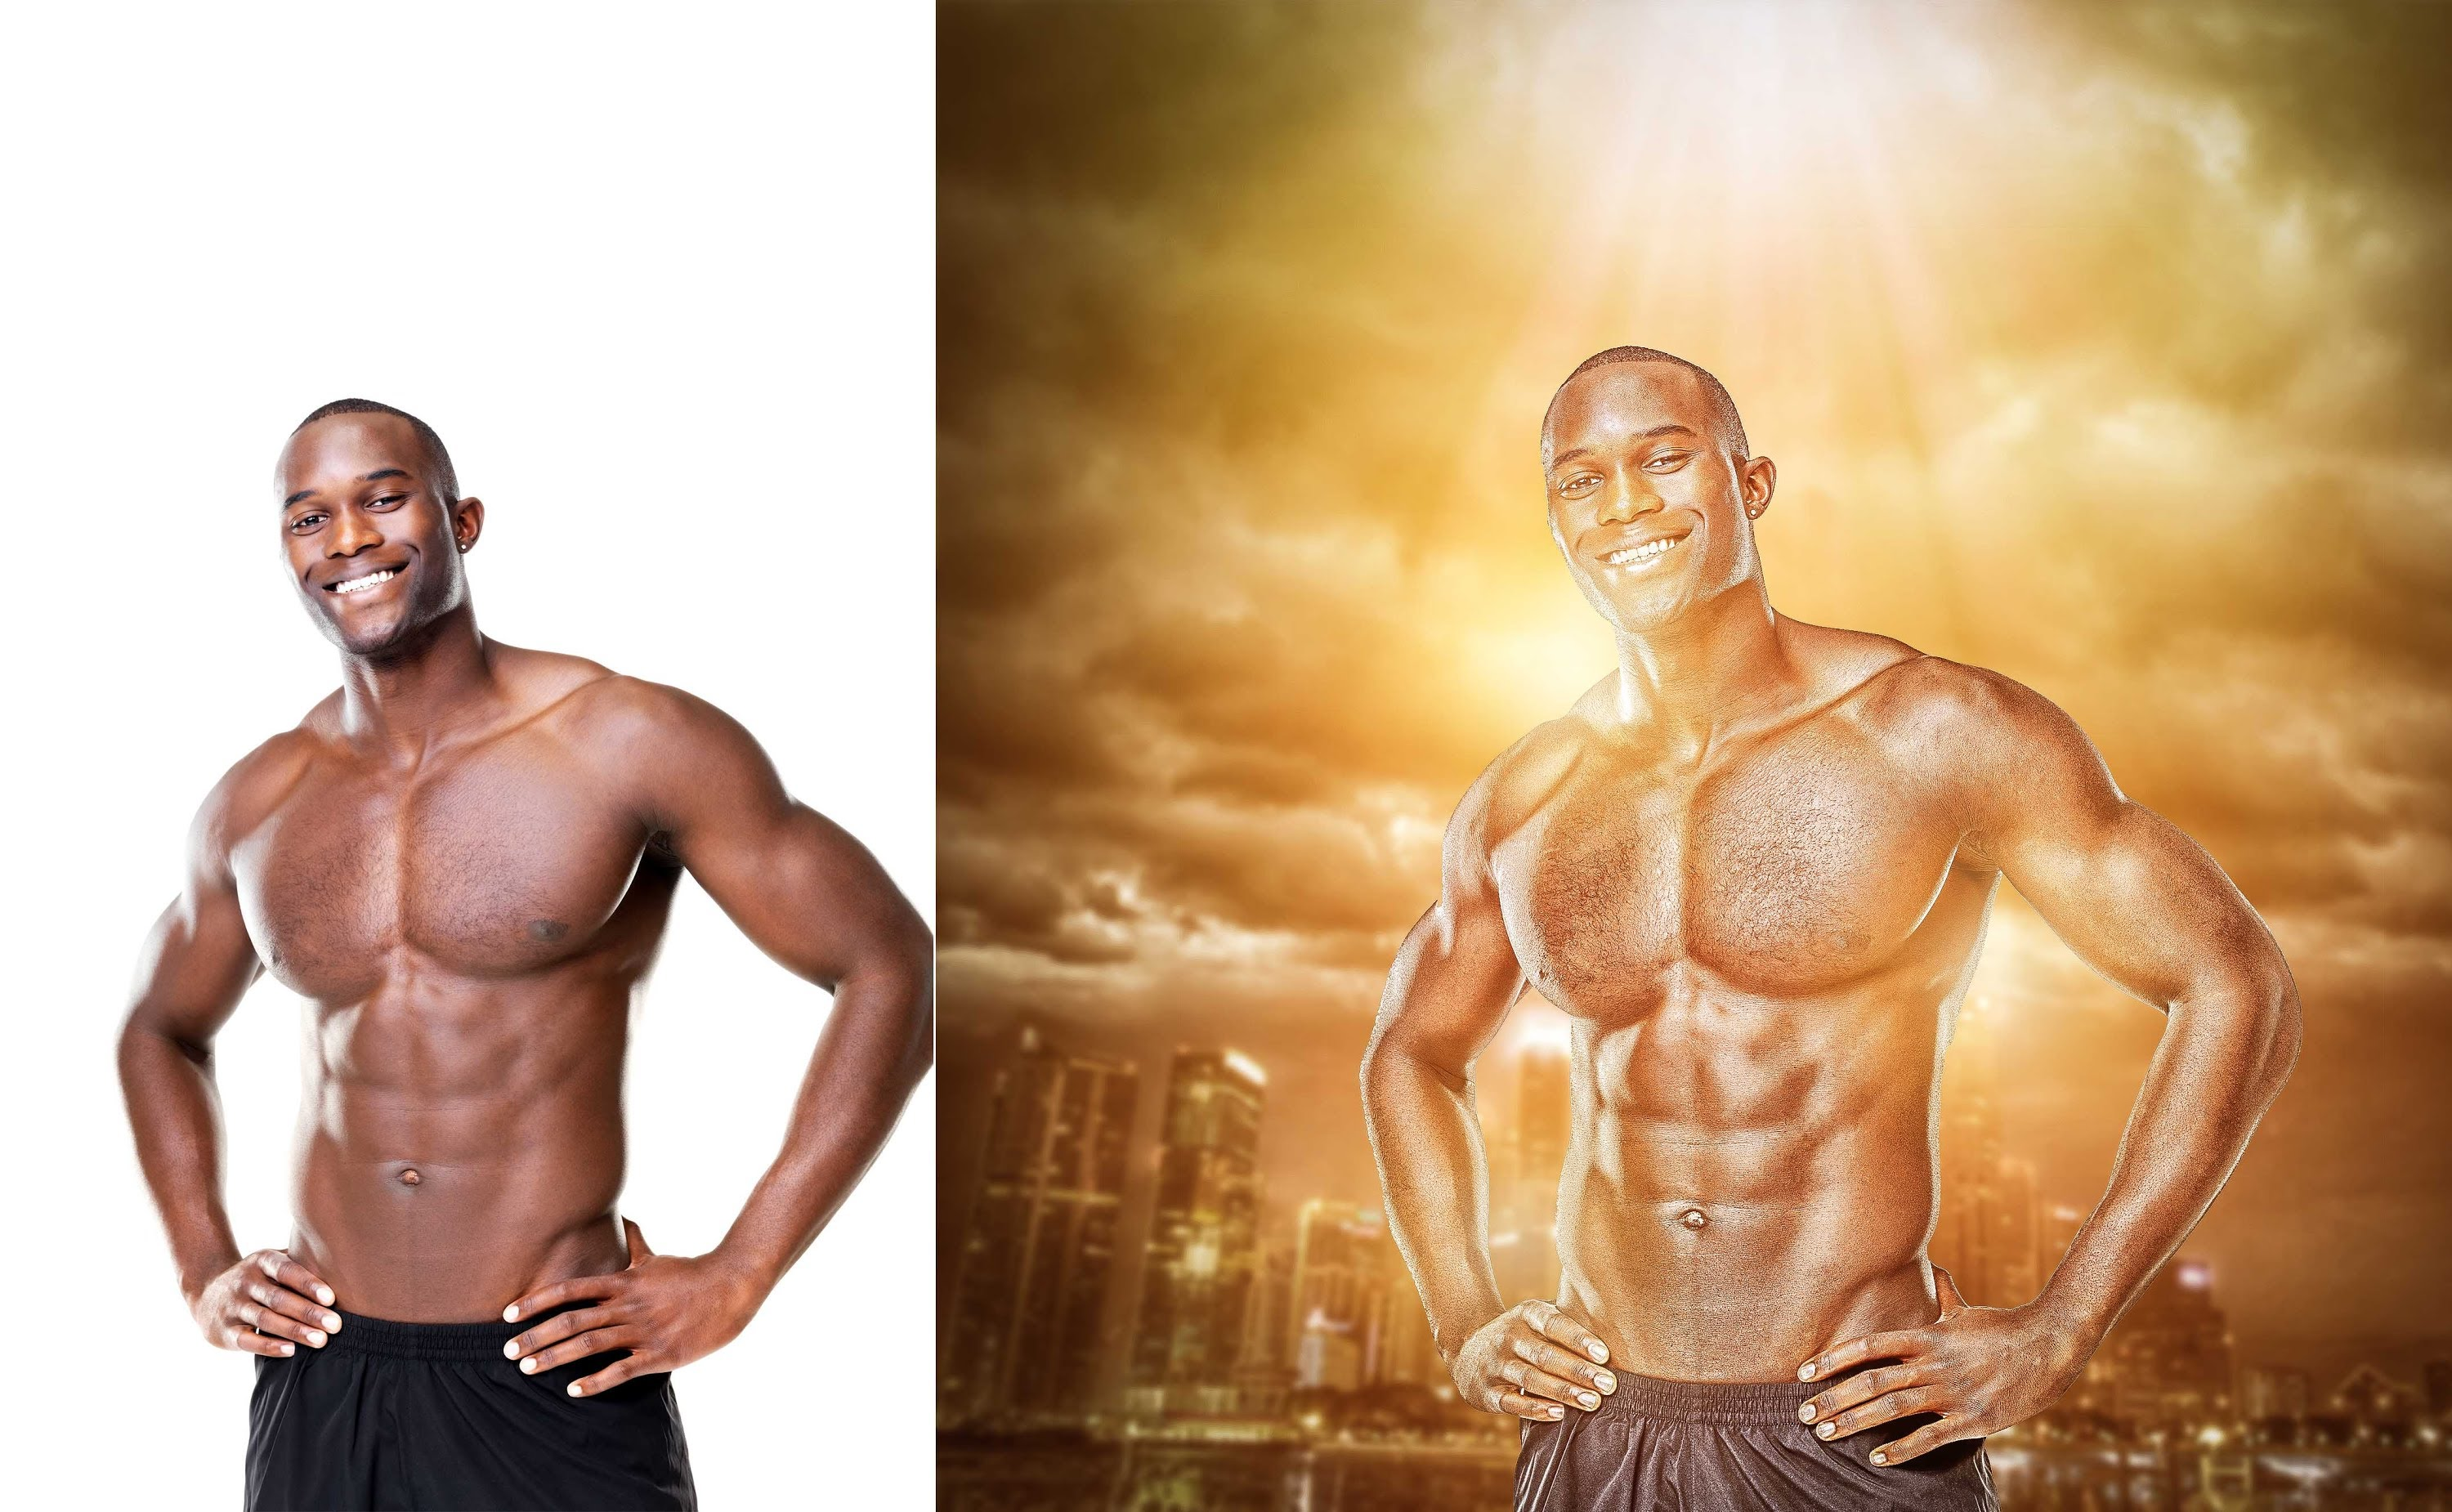 do professionally any photoshop editing within 24 hrs